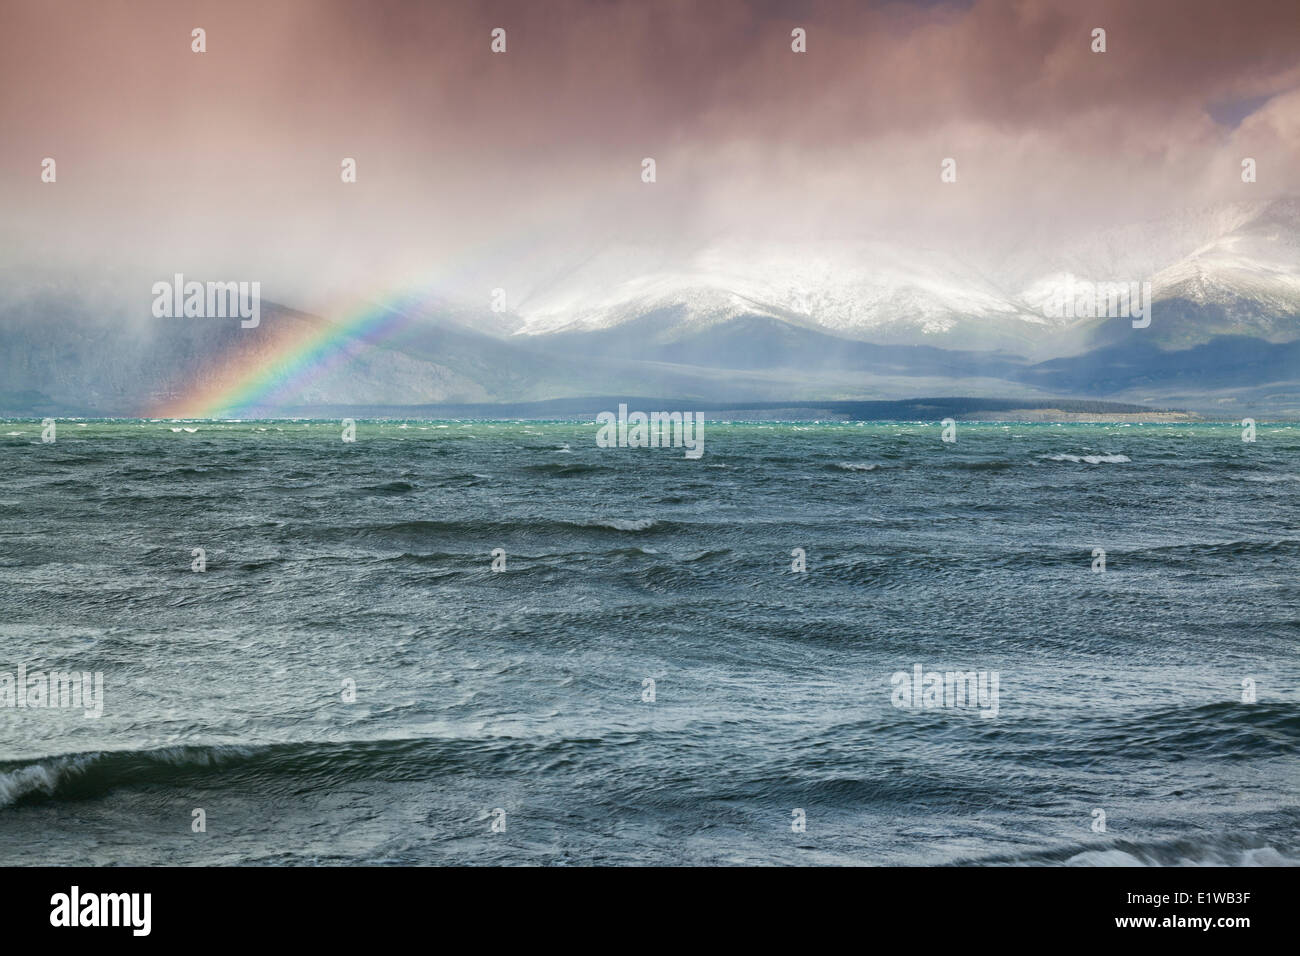 Rainbow over Kluane Lake and the Ruby Range near the Congdon Creek Campground in the Yukon, Canada - Stock Image